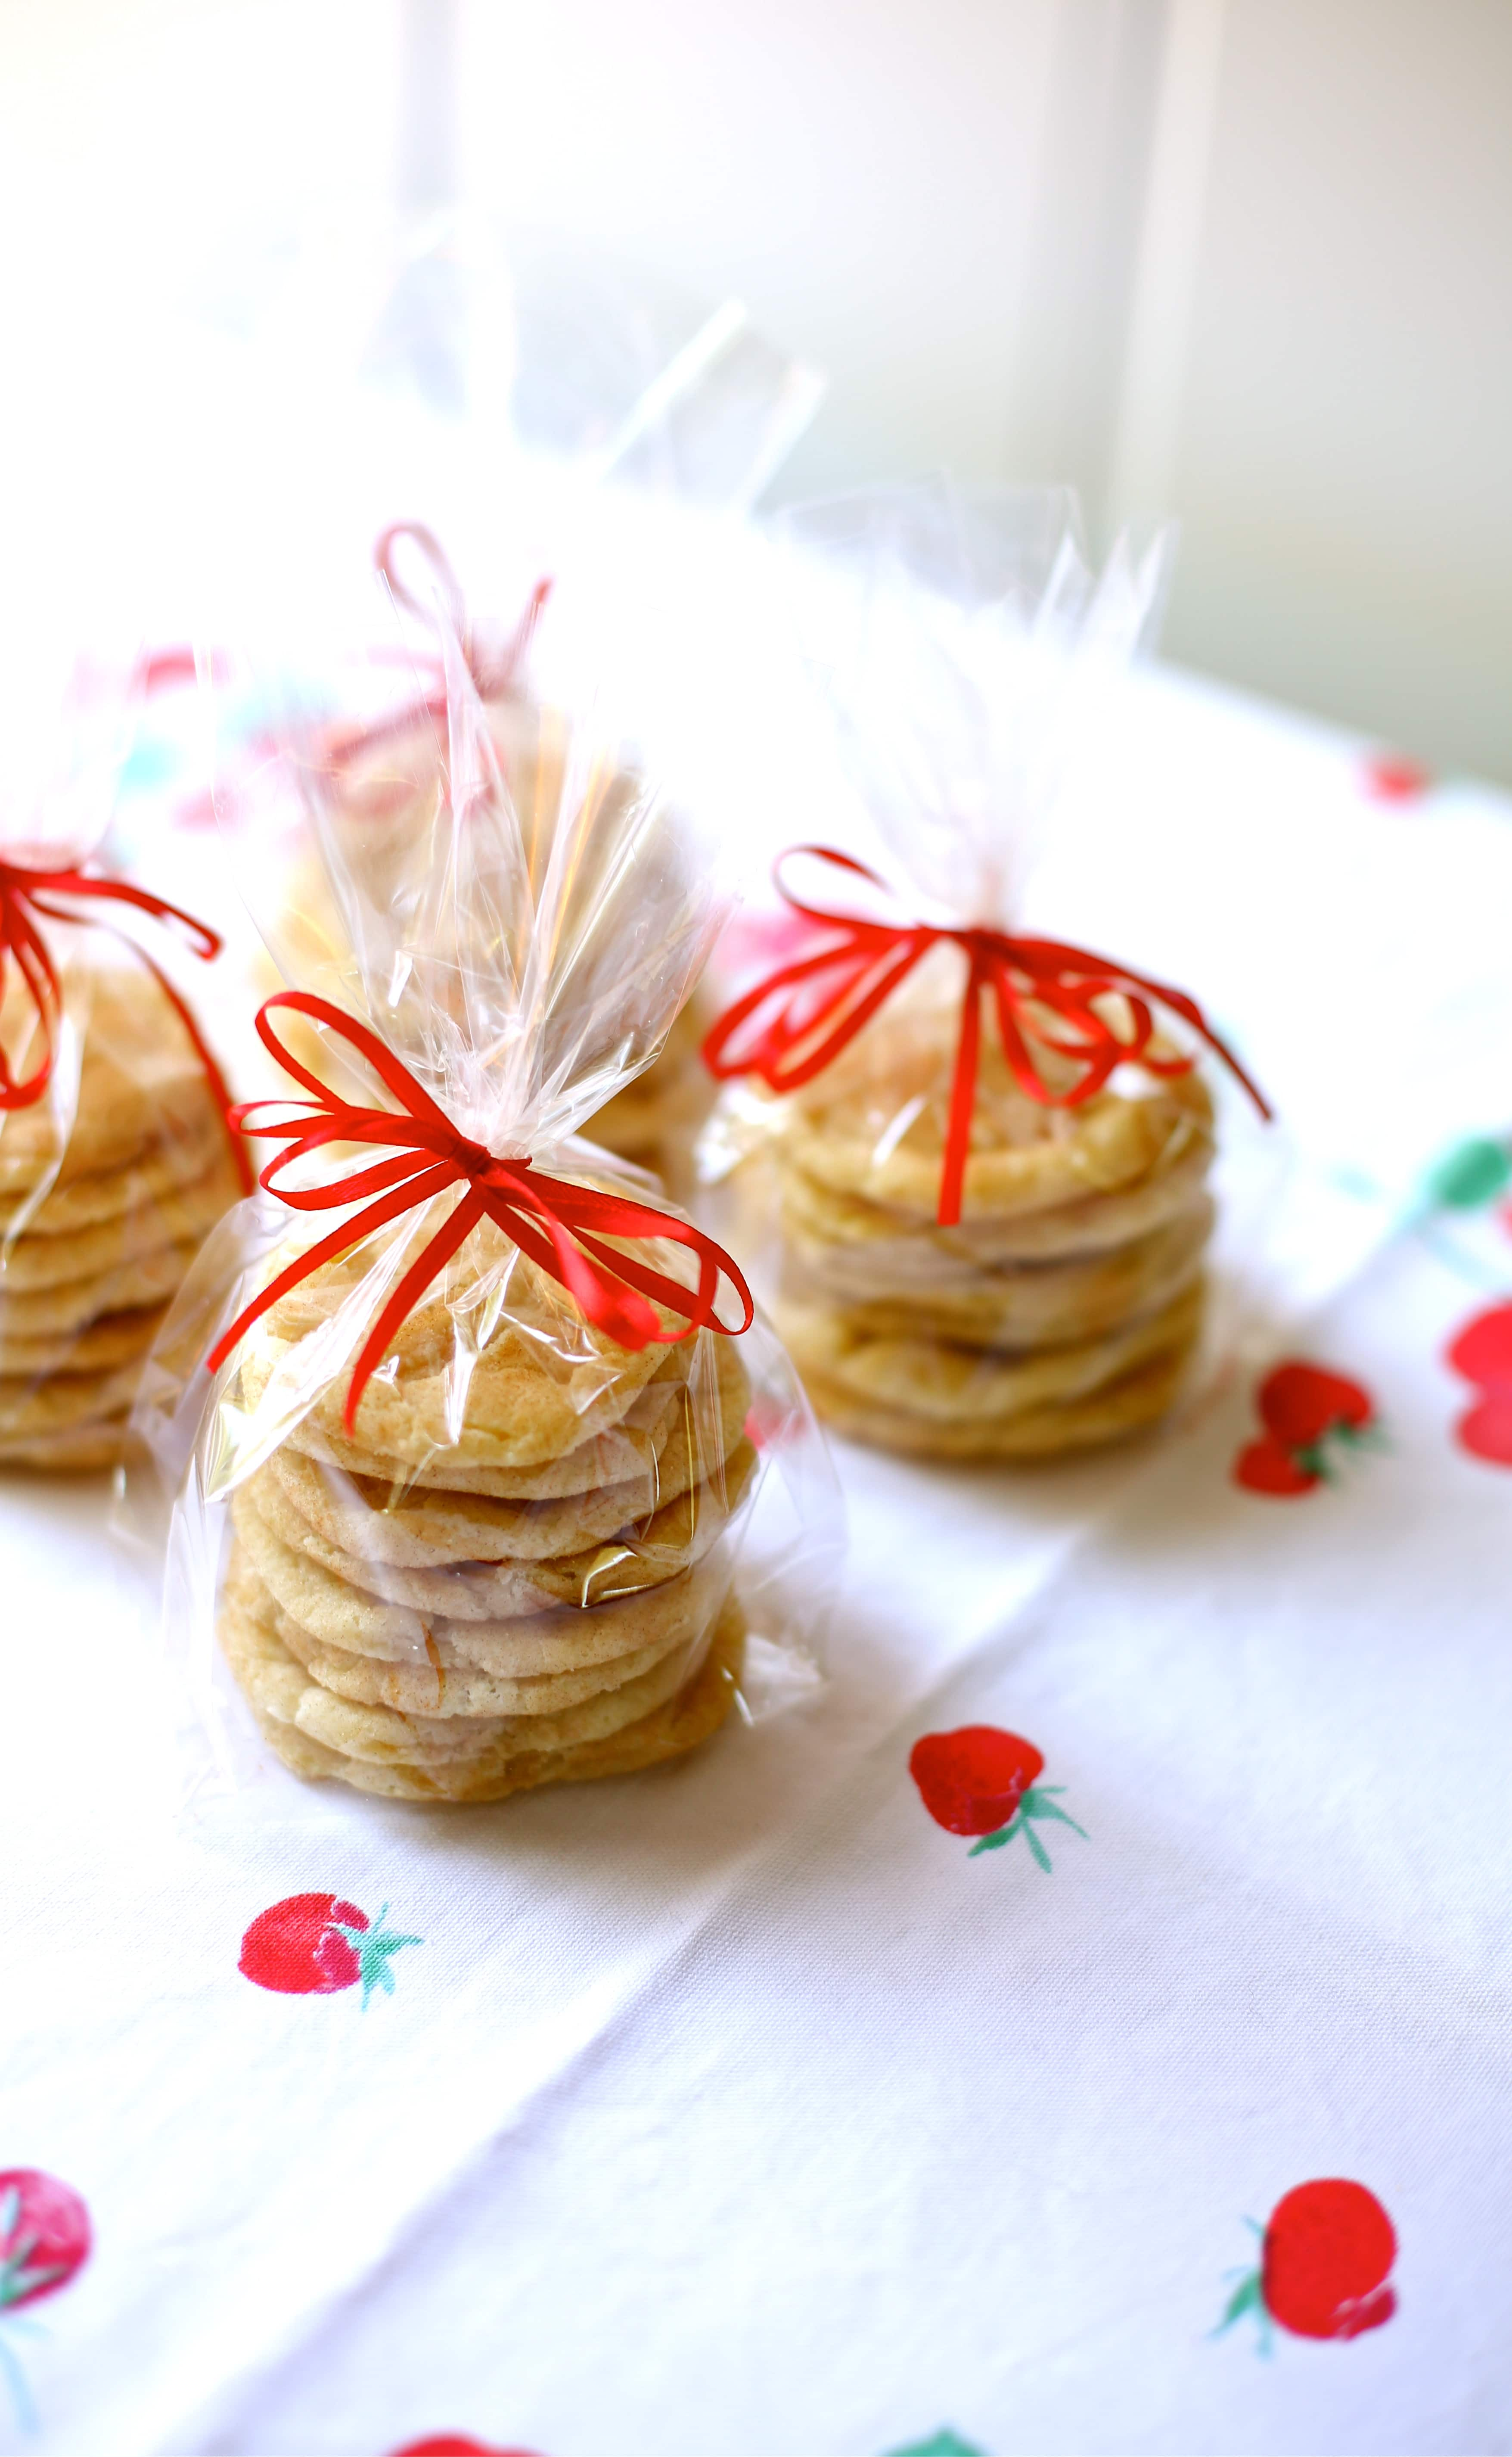 cookies in a celophane bag with red ribbon